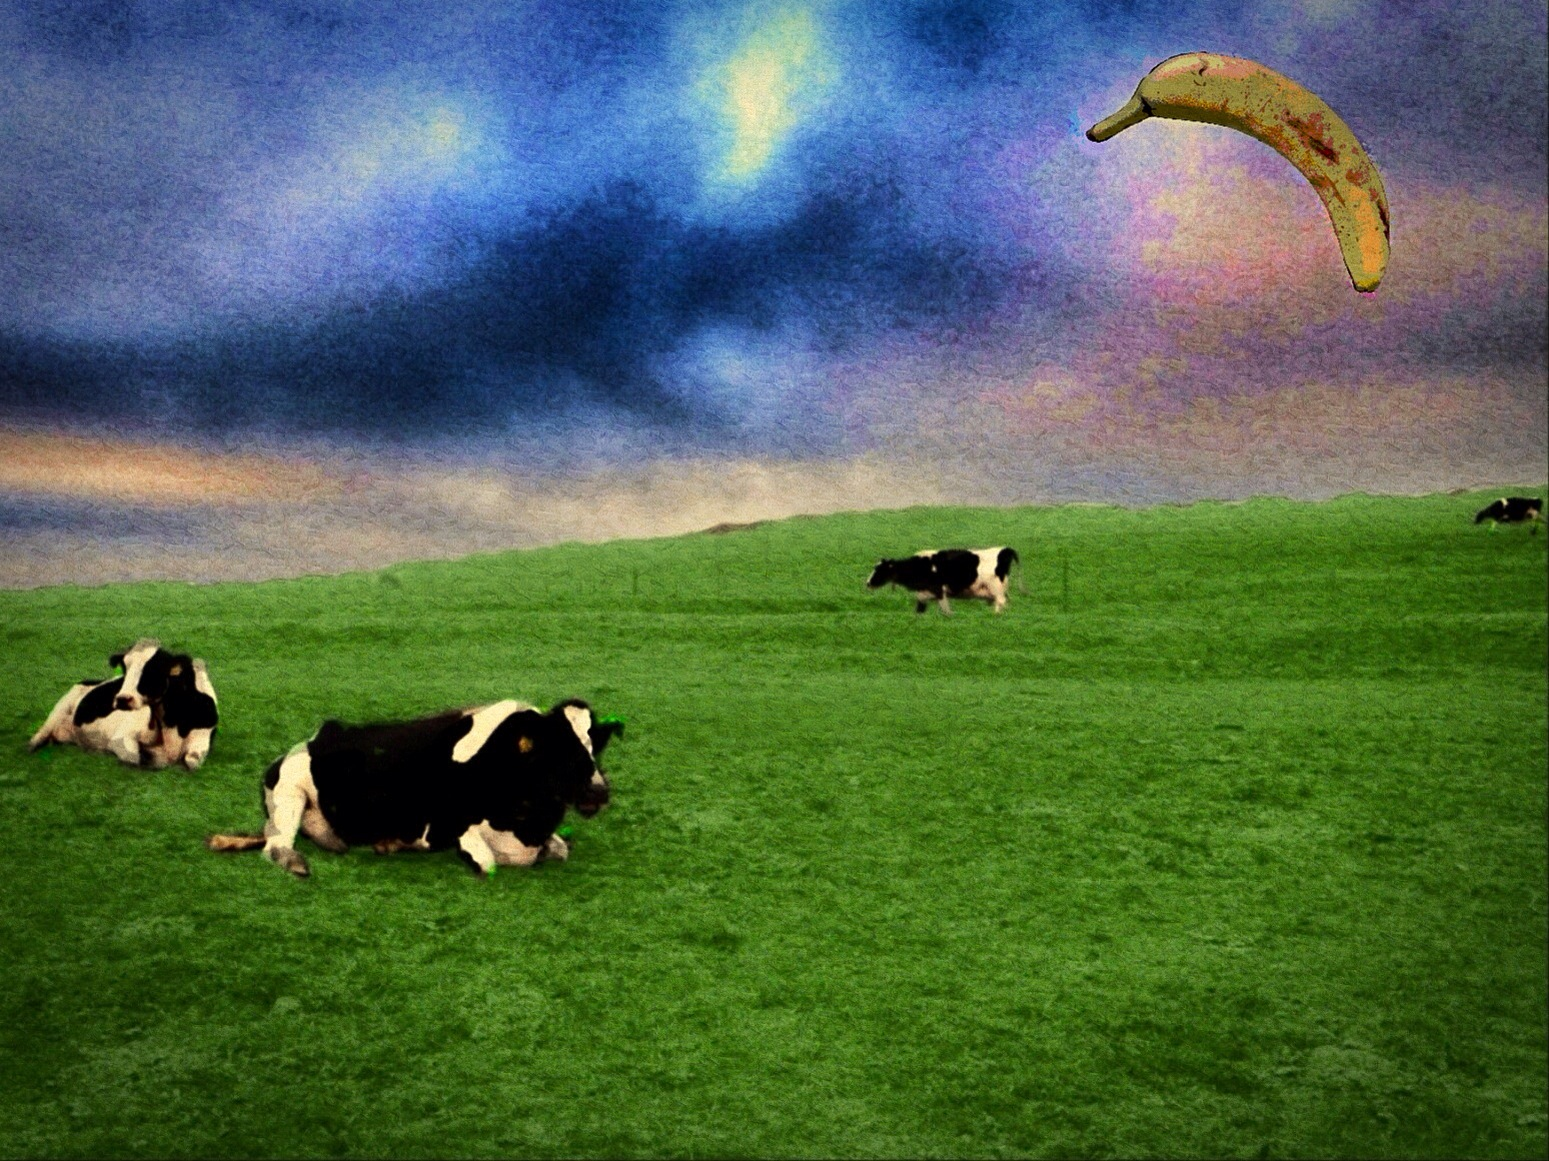 Still-life with cows